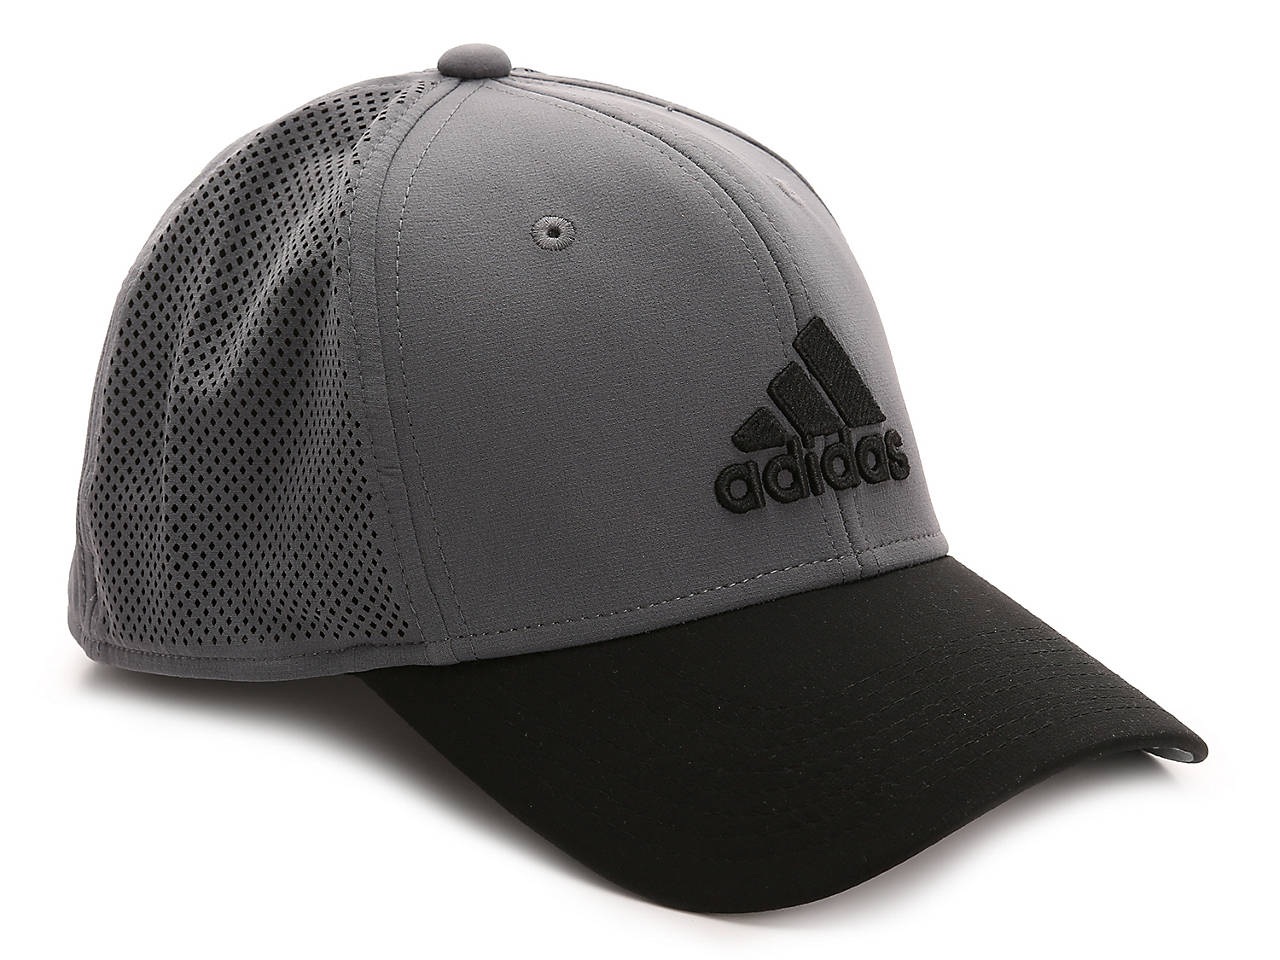 320f6bdf3ad adidas Adizero Scrimmage Baseball Cap Men s Handbags   Accessories